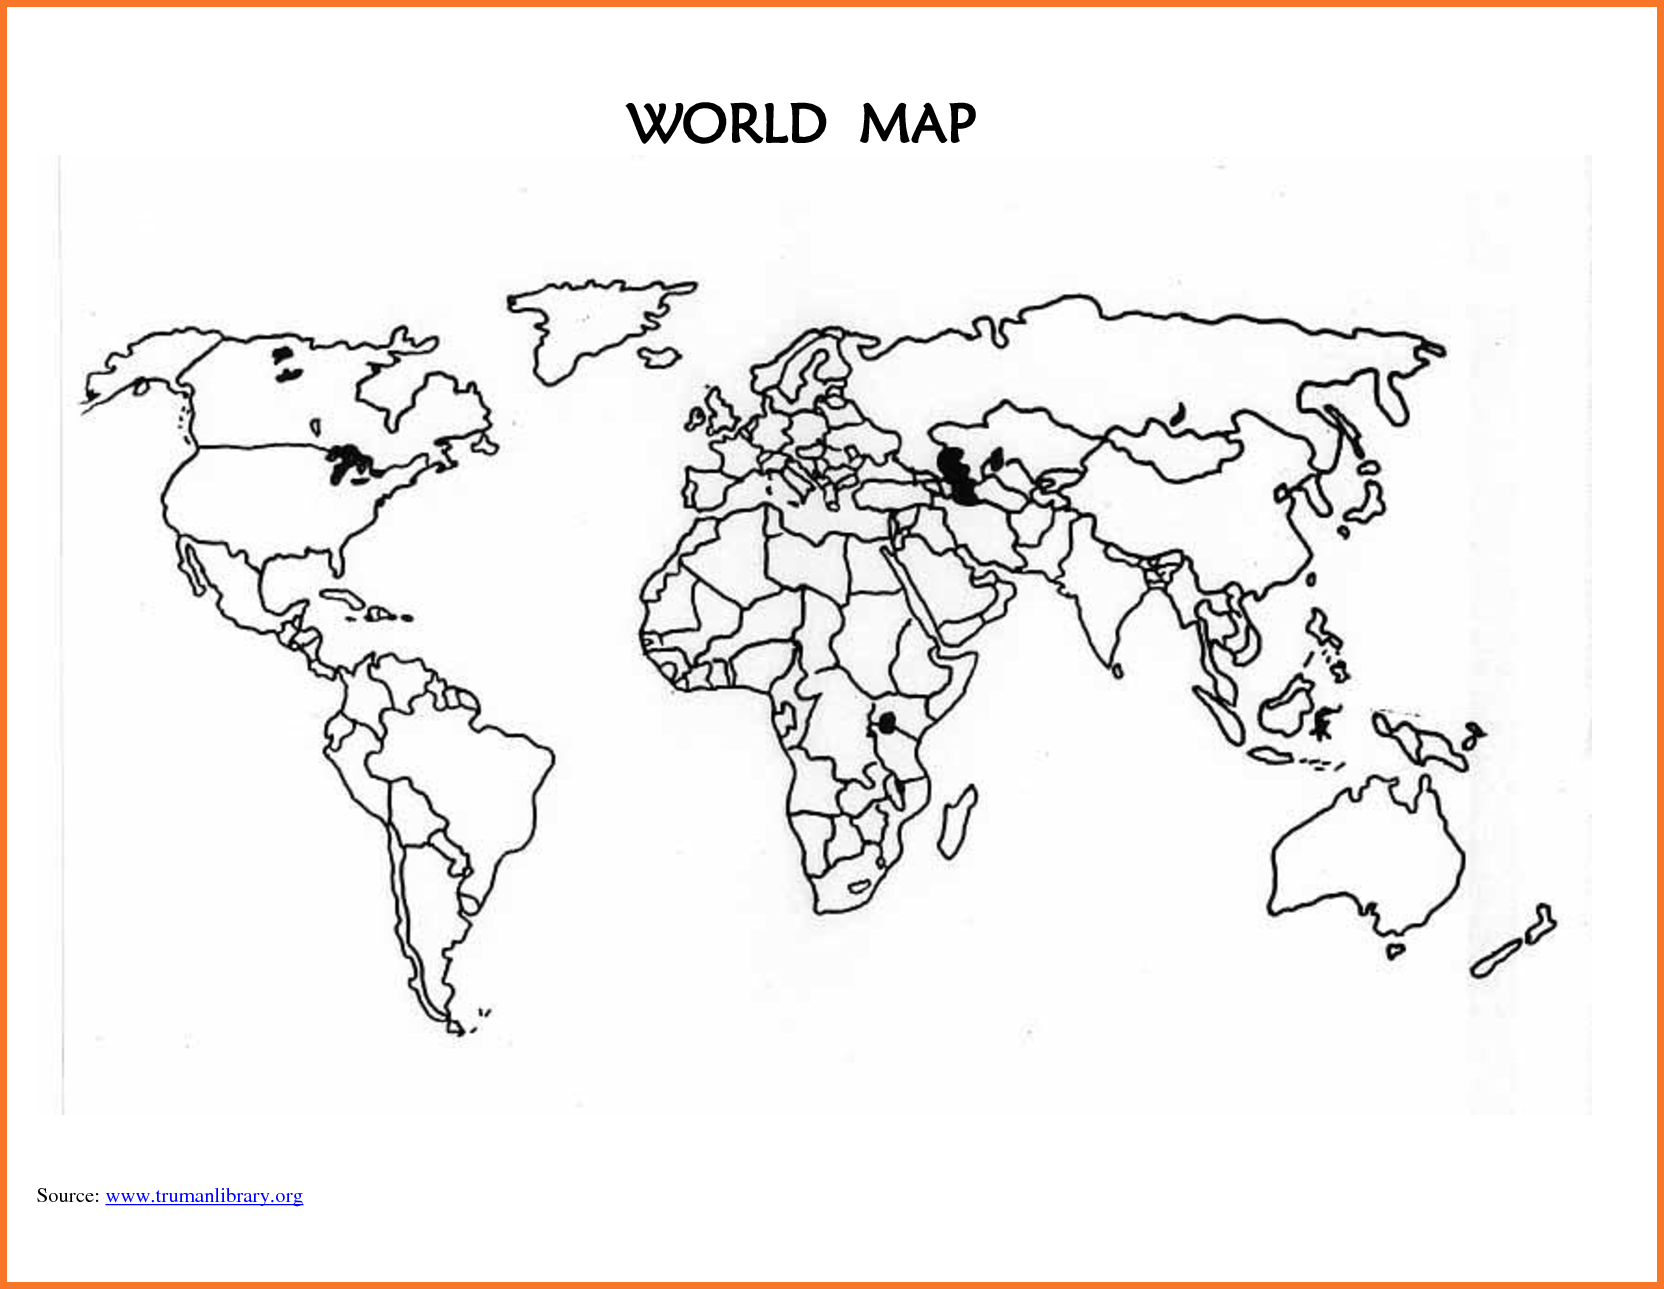 World map template printable blank world map countries294994 world world map template printable blank world map countries294994 world gumiabroncs